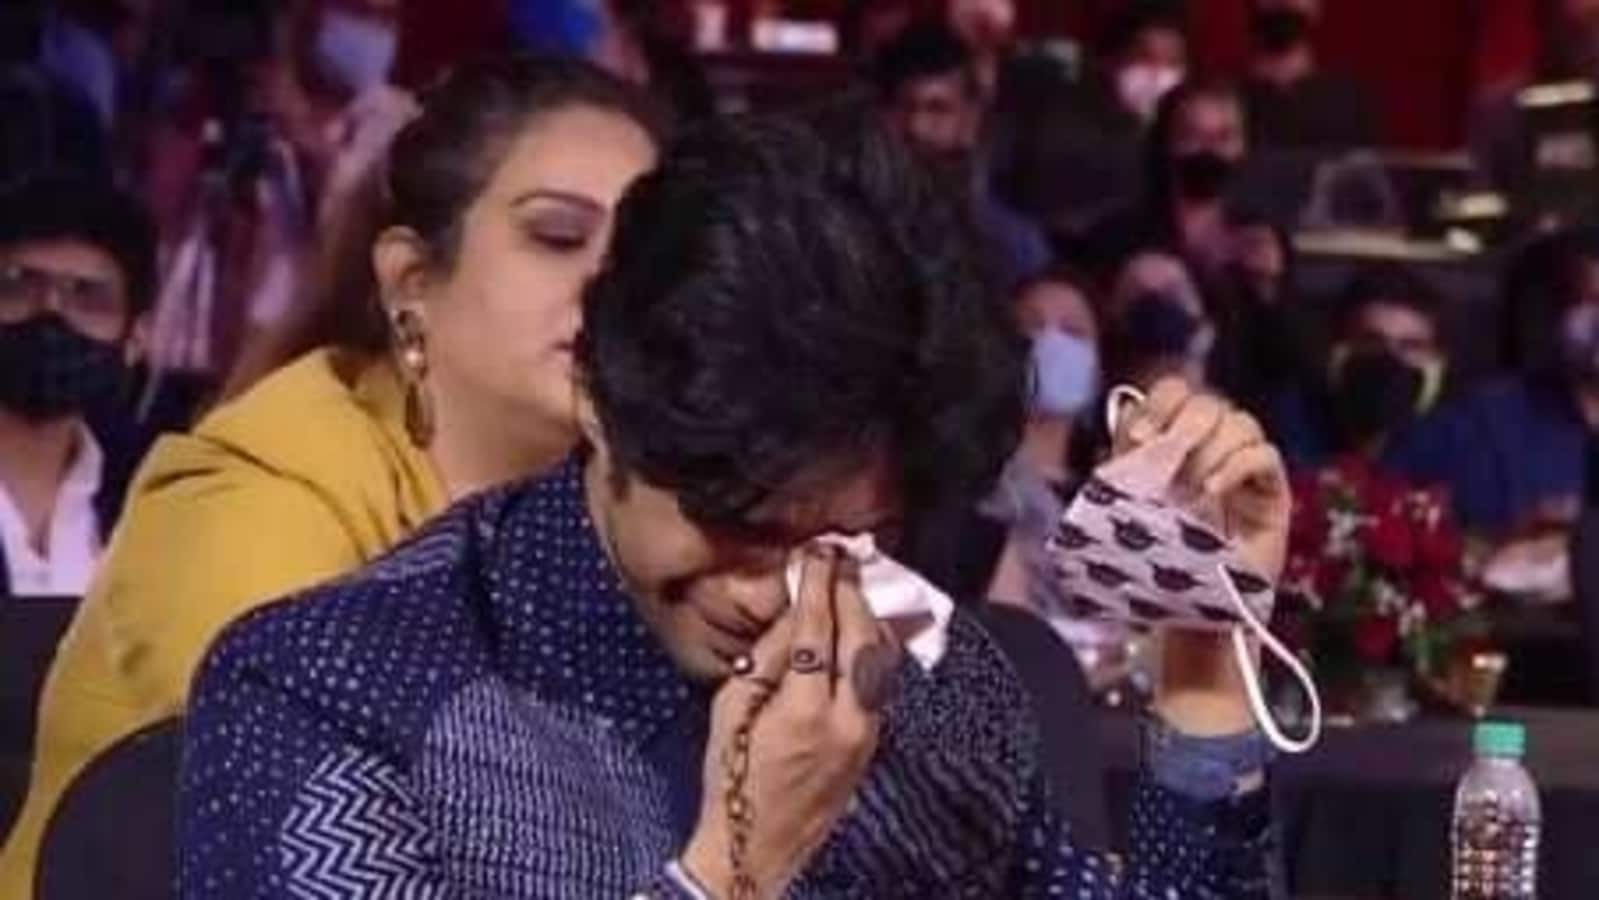 Irrfan's son, Babil, weeping as he received his father's honor, warm words said: 'We will make this journey together'